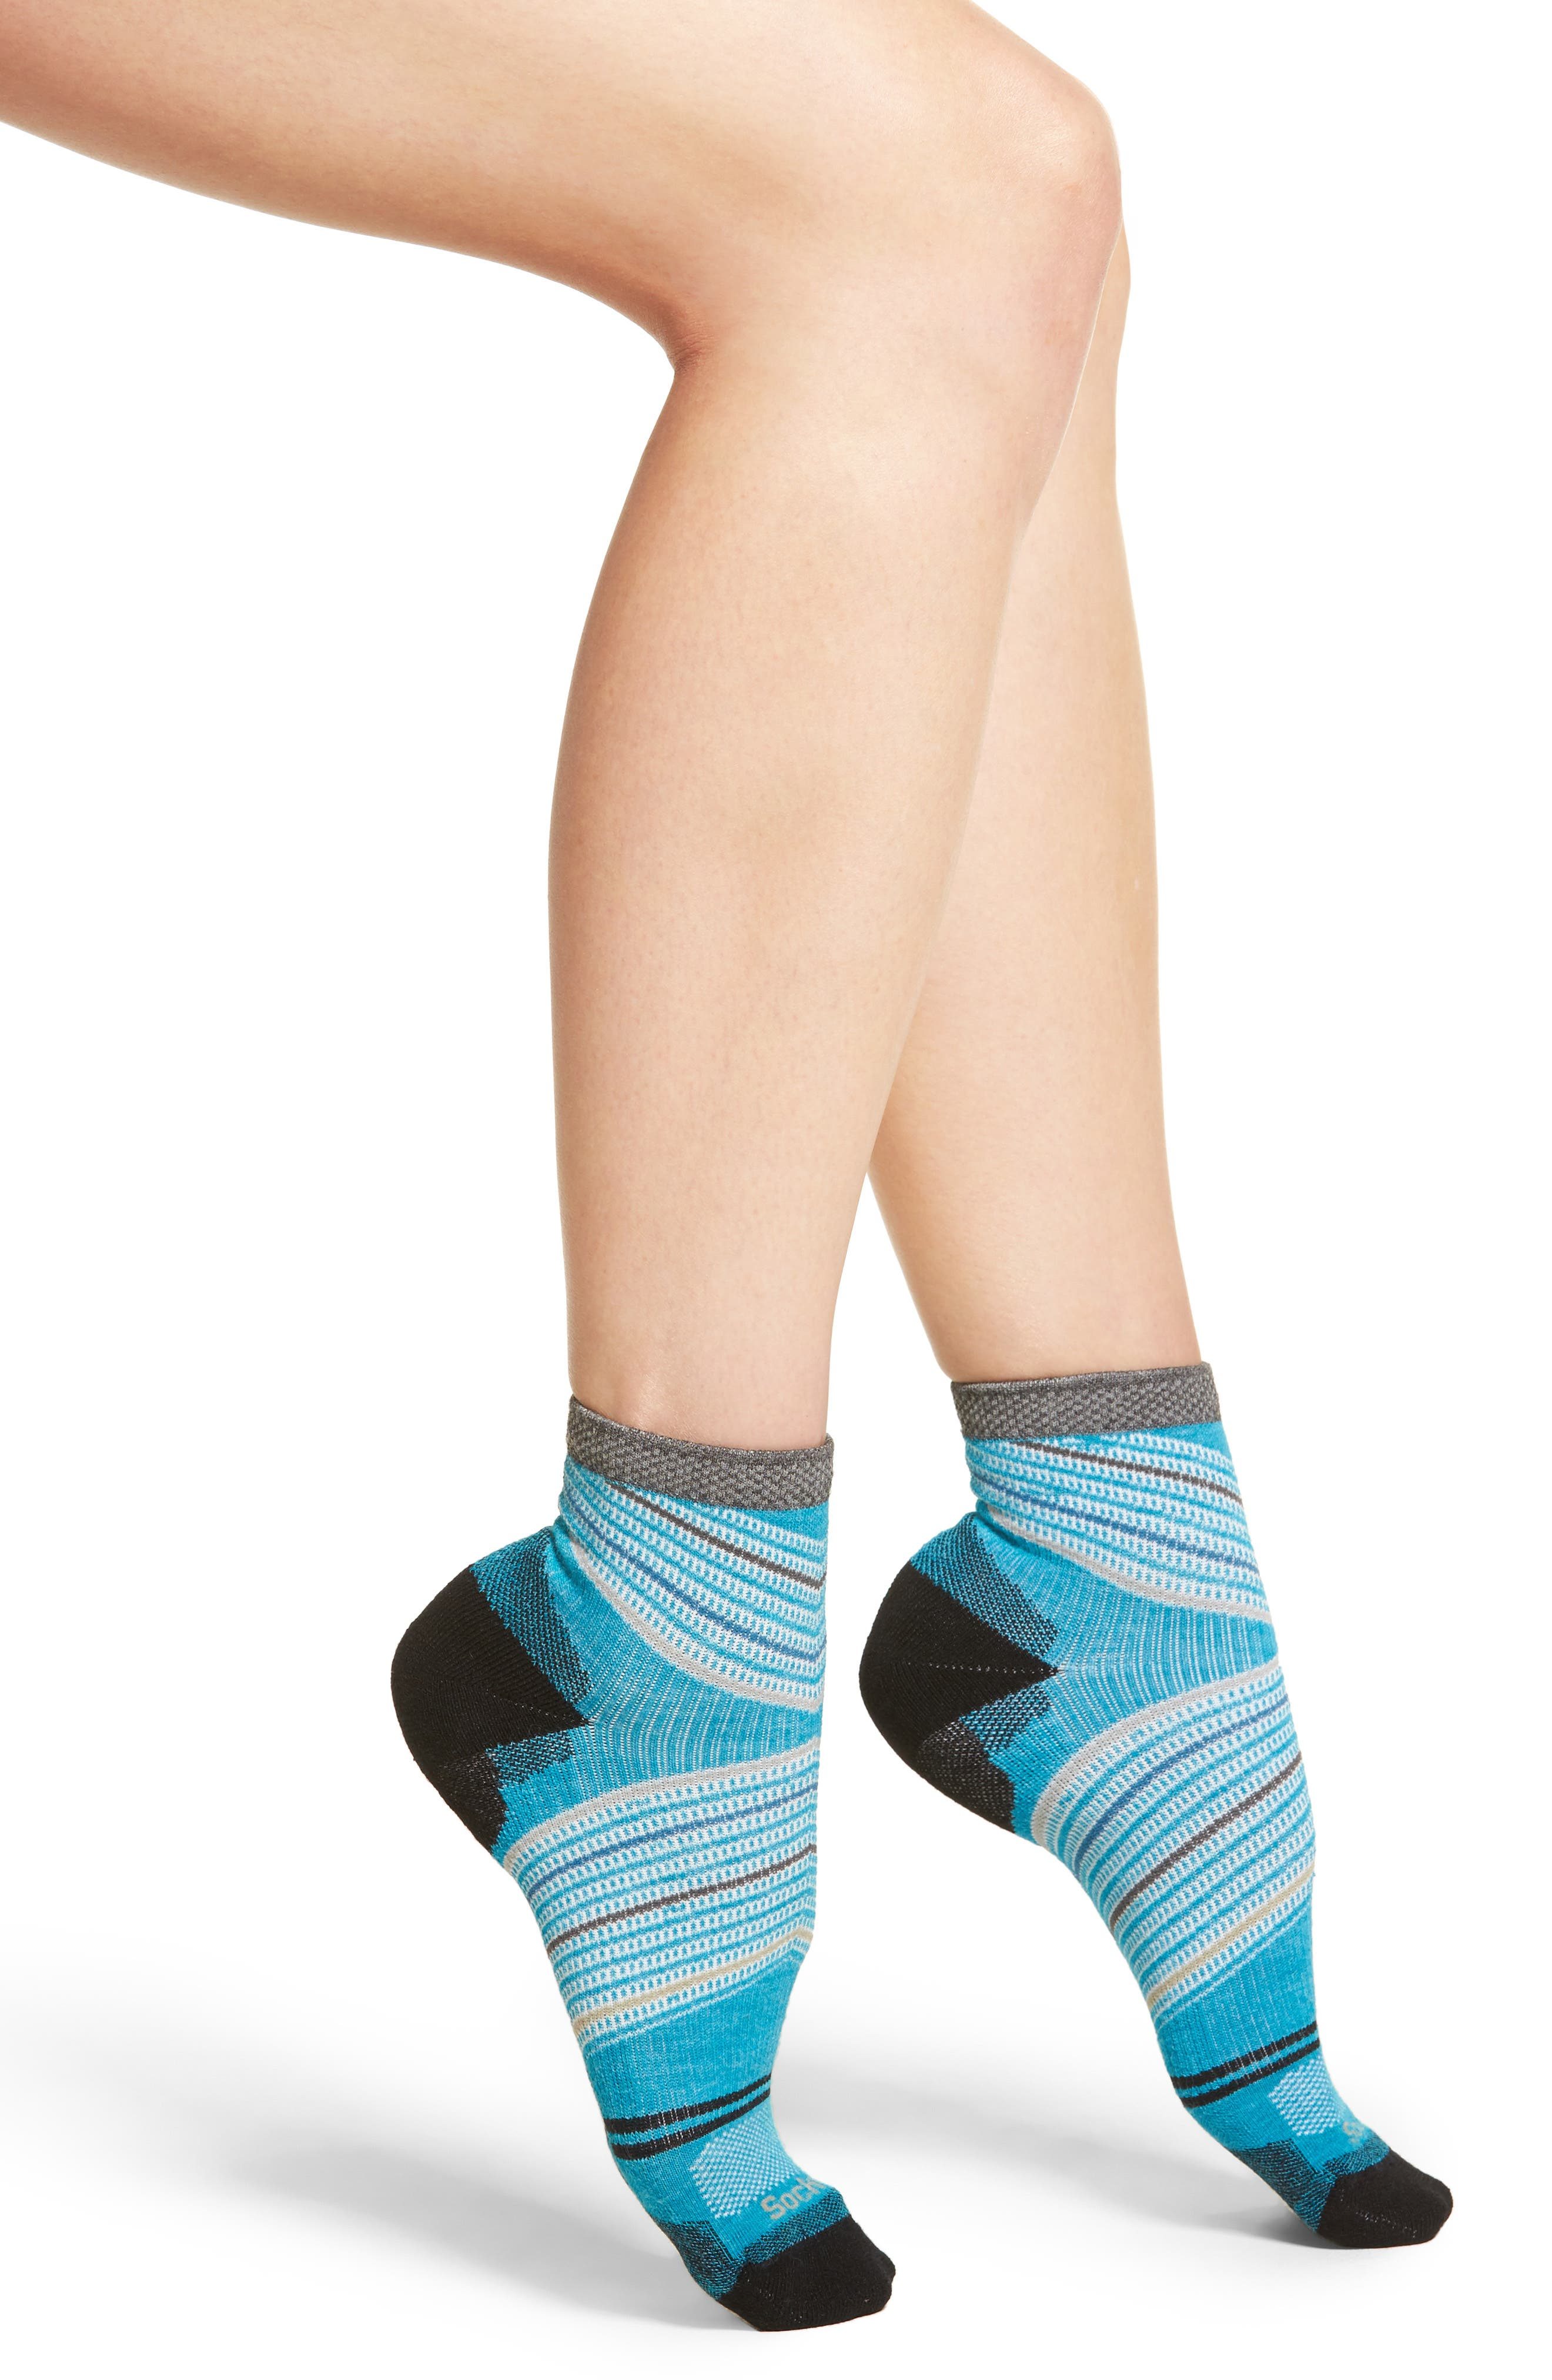 Sockwell Pacer Therapeutic Performance Socks